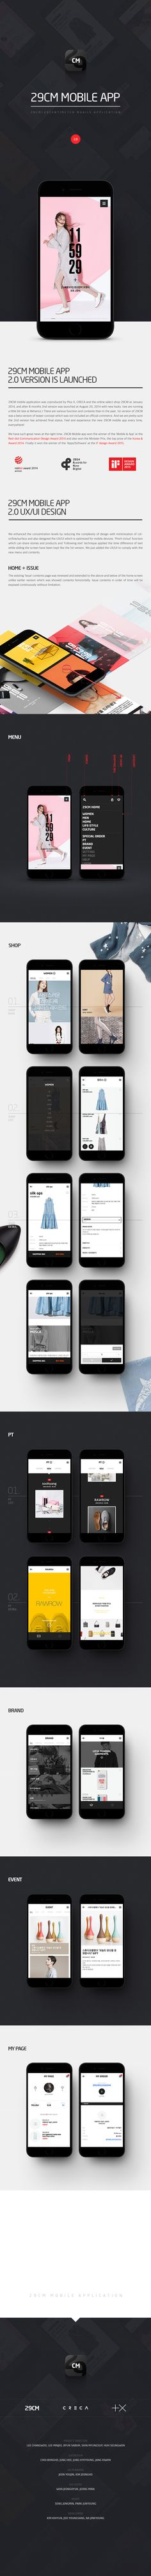 29CM Mobile E-Commerce Fashion App UI Design